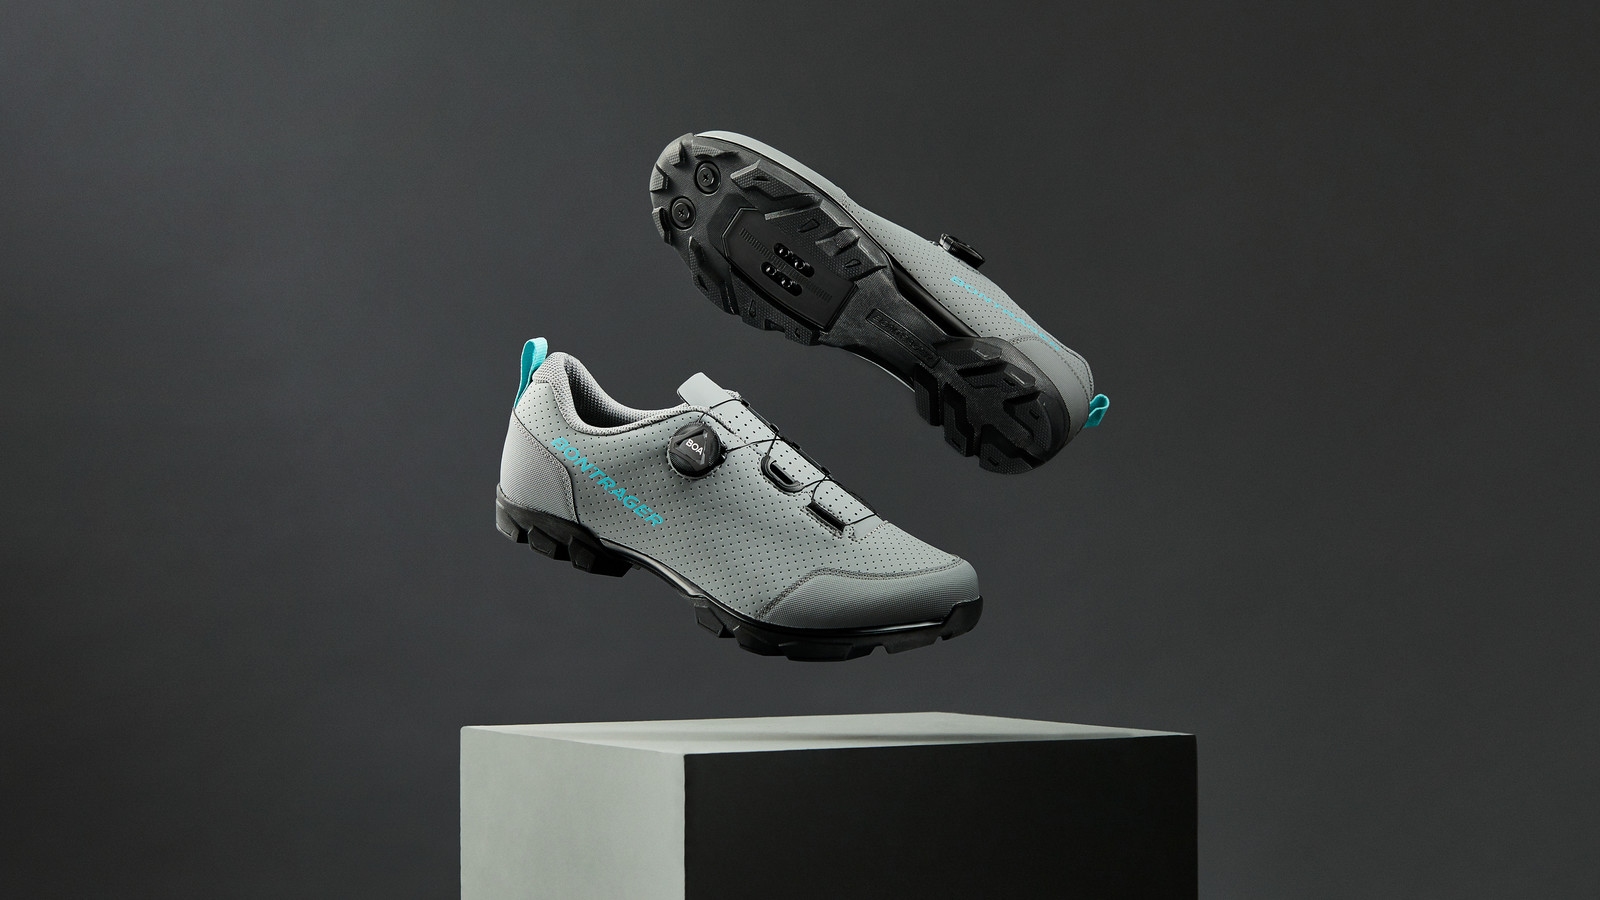 Bontrager Releases Updated Foray and Evoke Mountain Bike Shoes